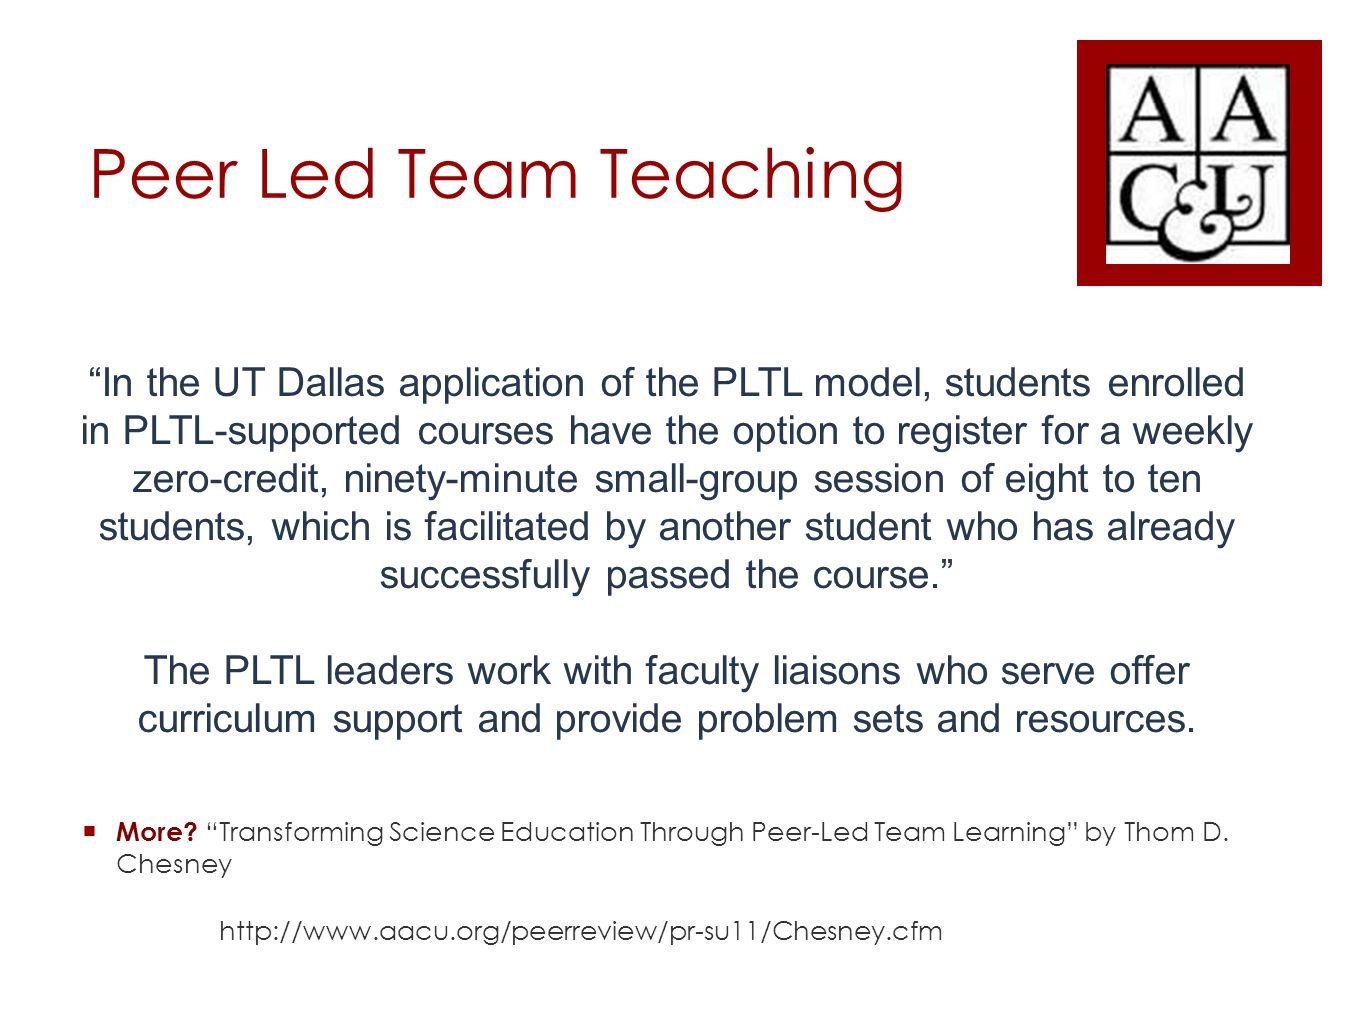 """Peer Led Team Teaching  More? """"Transforming Science Education Through Peer-Led Team Learning"""" by Thom D. Chesney http://www.aacu.org/peerreview/pr-su"""